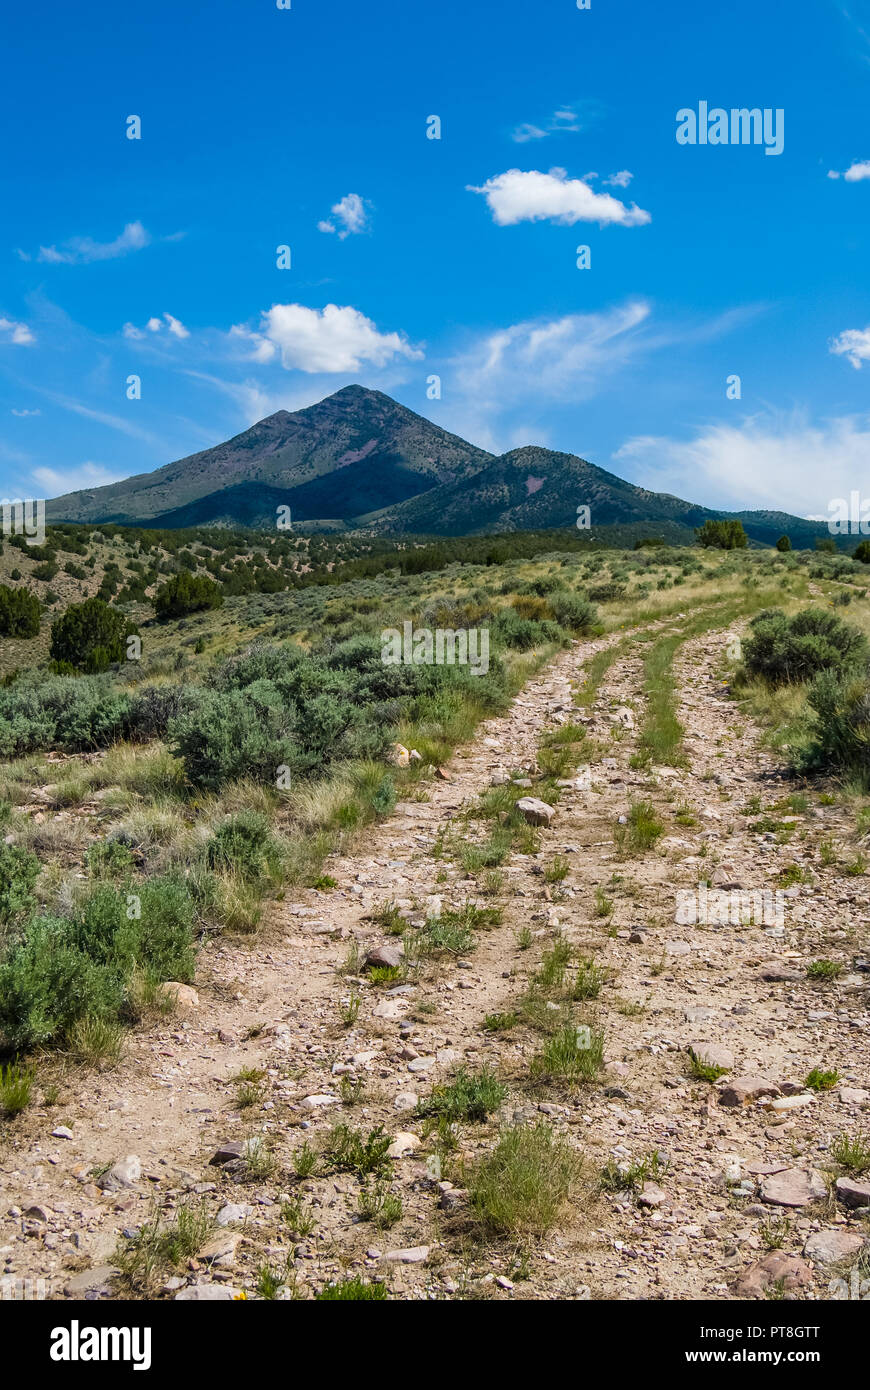 A narrow dirt road and trail head through the sagebrush and juniper trees of the Utah West Desert. In the distance is a small mountain with white, whi Stock Photo